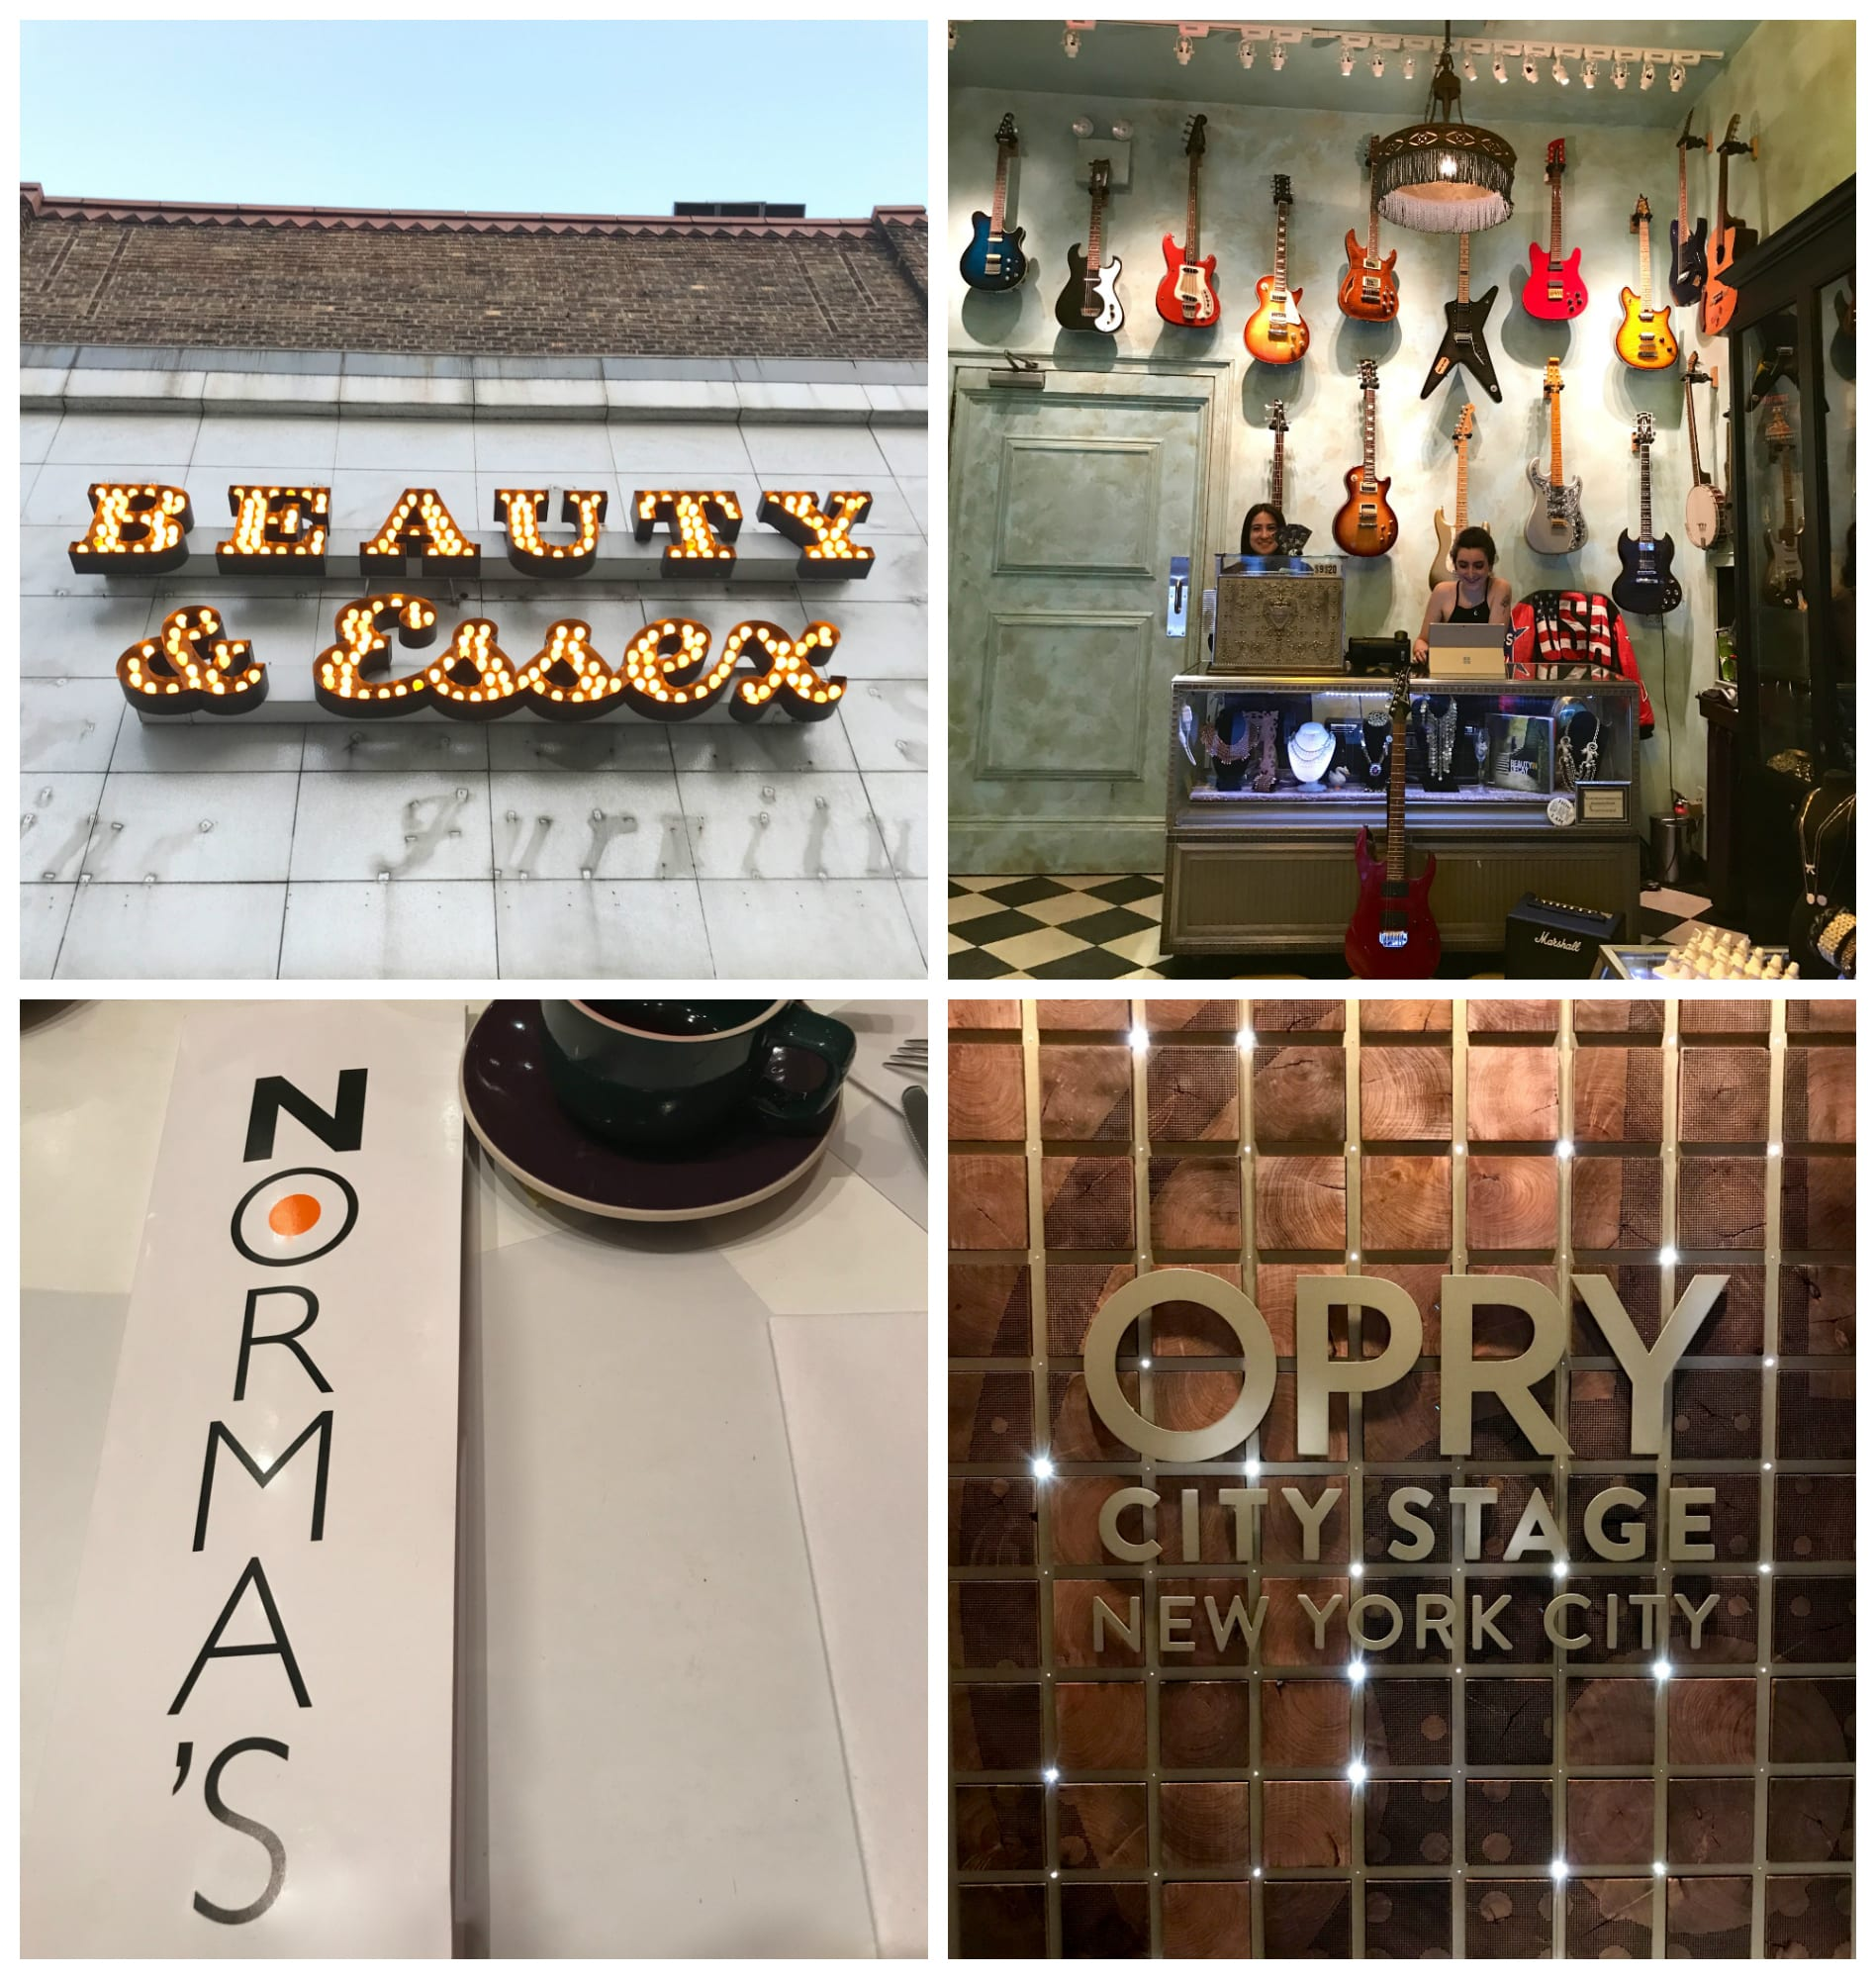 Restaurans, NYC restaurants, Beauty & Essex NYC, Normas NYC, Opry NYC